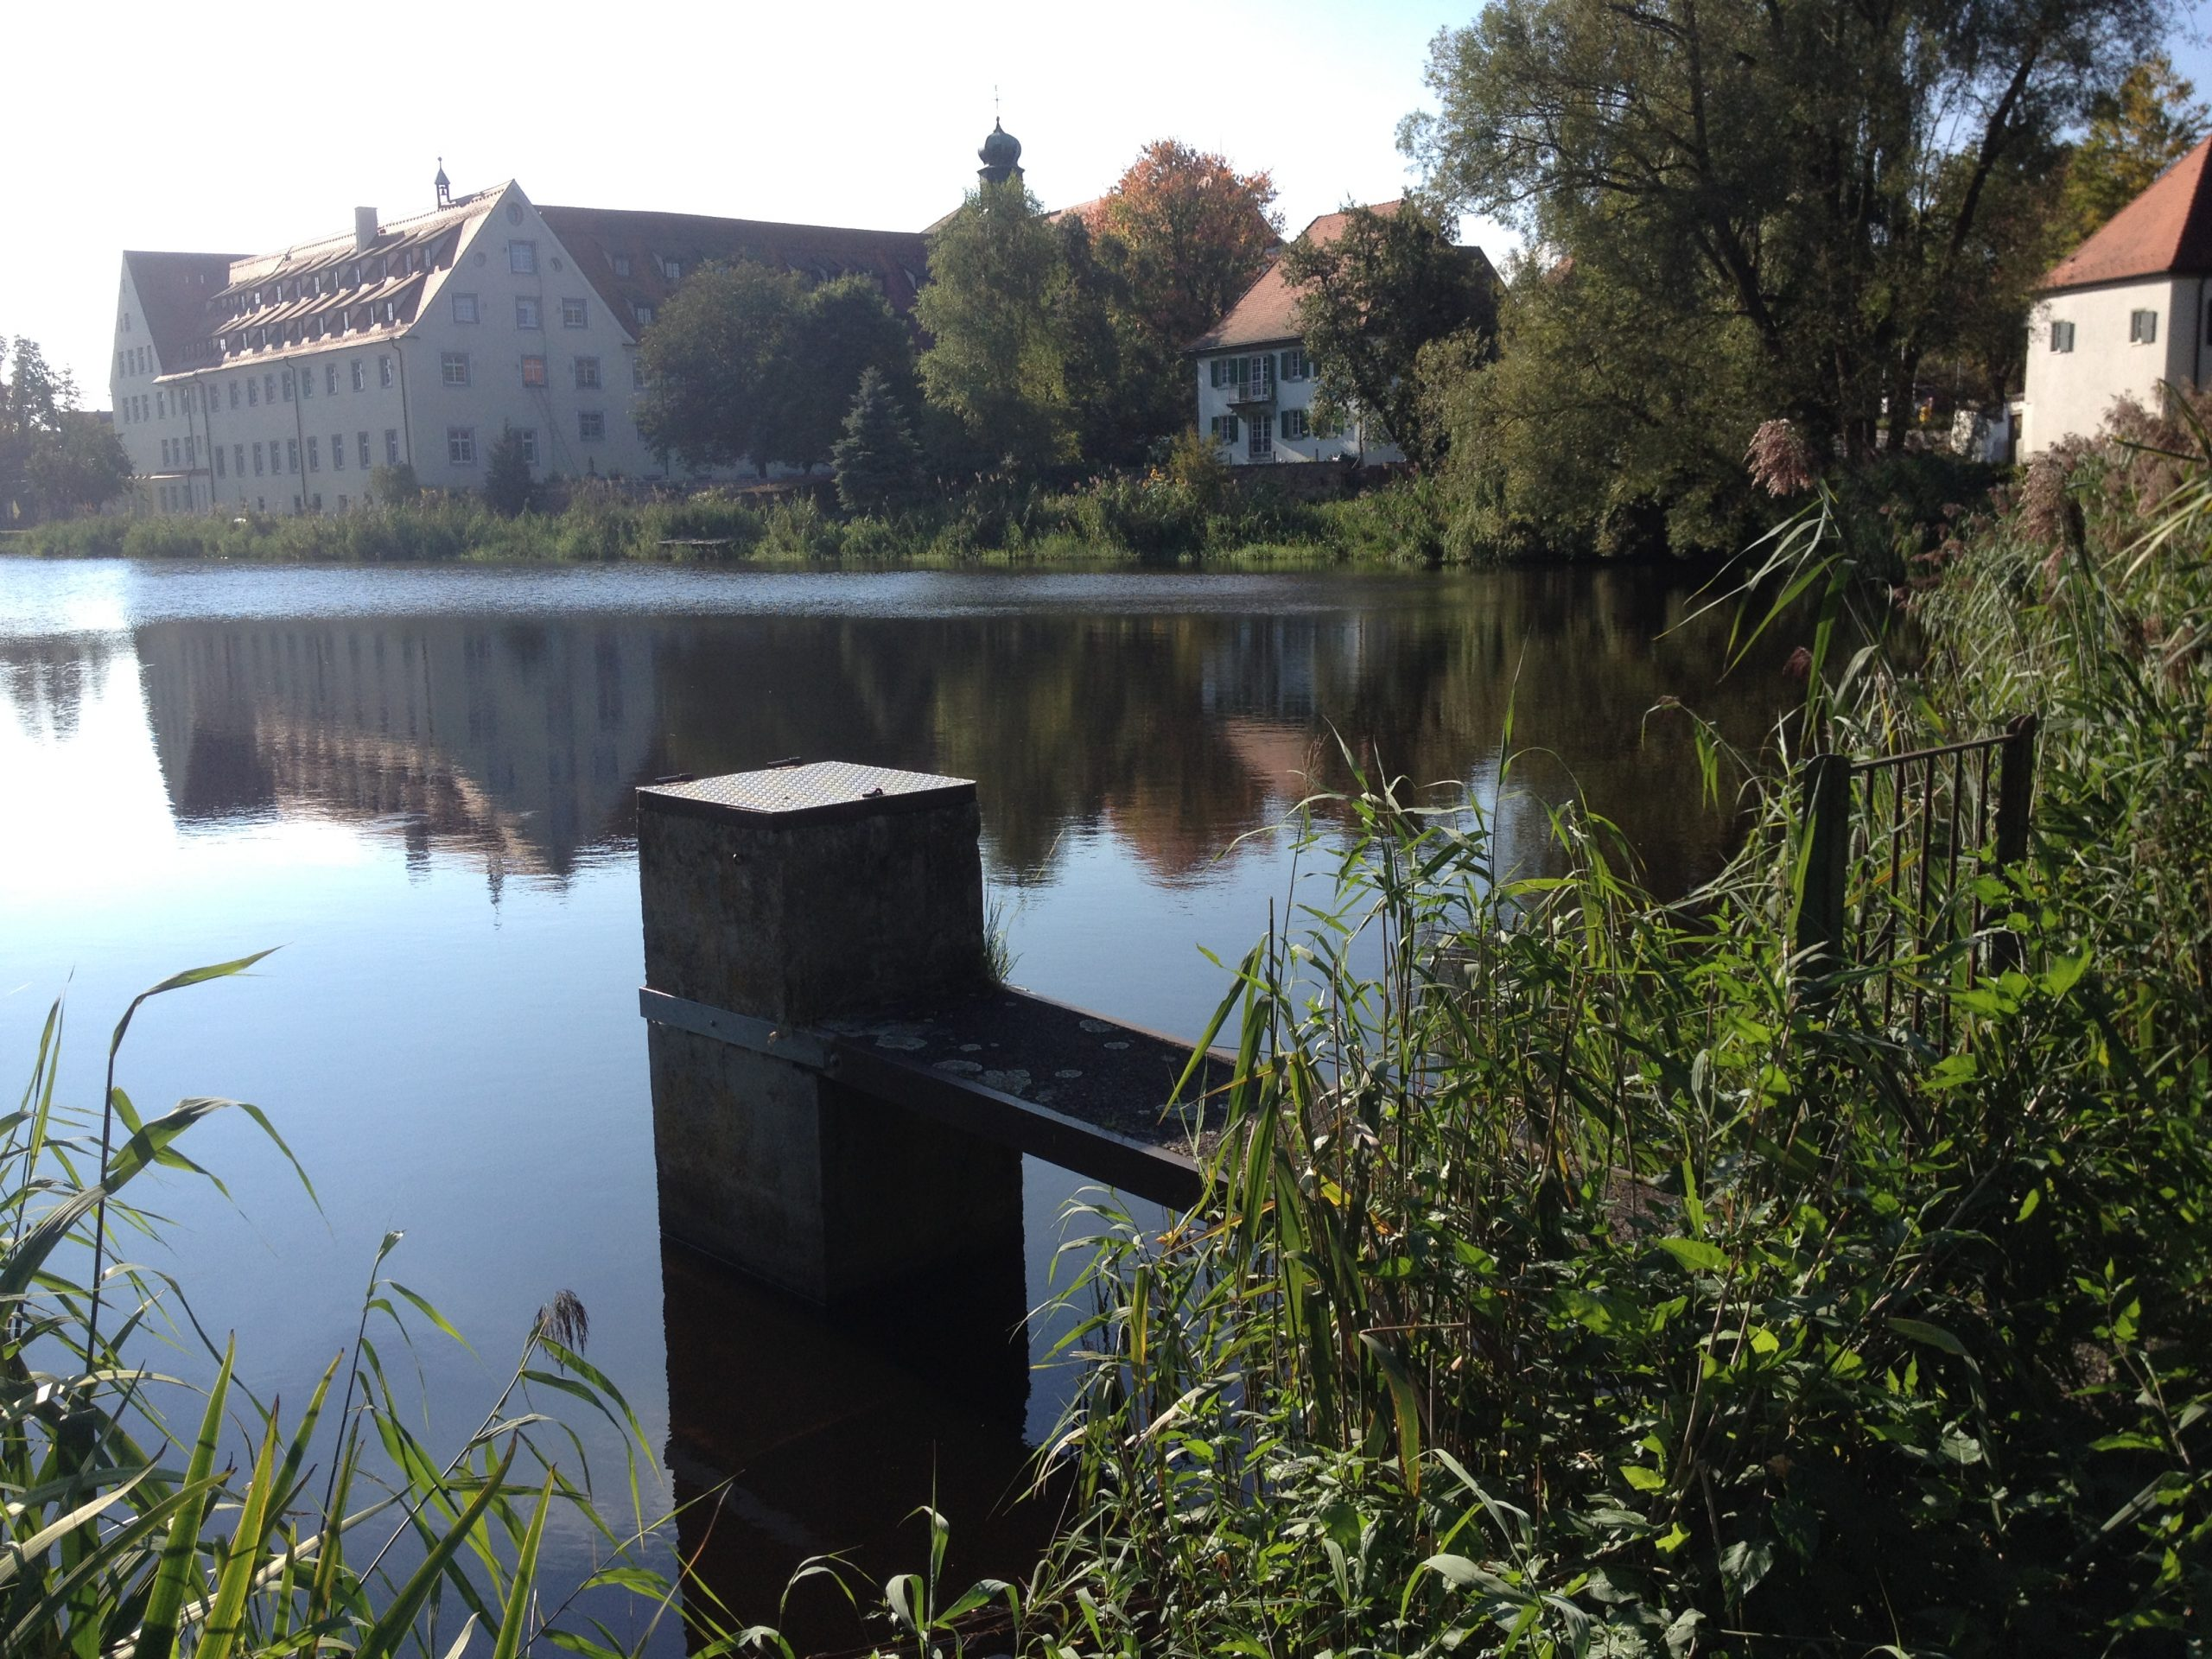 The monastery pond in Wald, east view from the dam with monk. Source: Zollernalb, Wikimedia Commons (CC BY-SA 4.0) Location: Monastery St. Lioba.